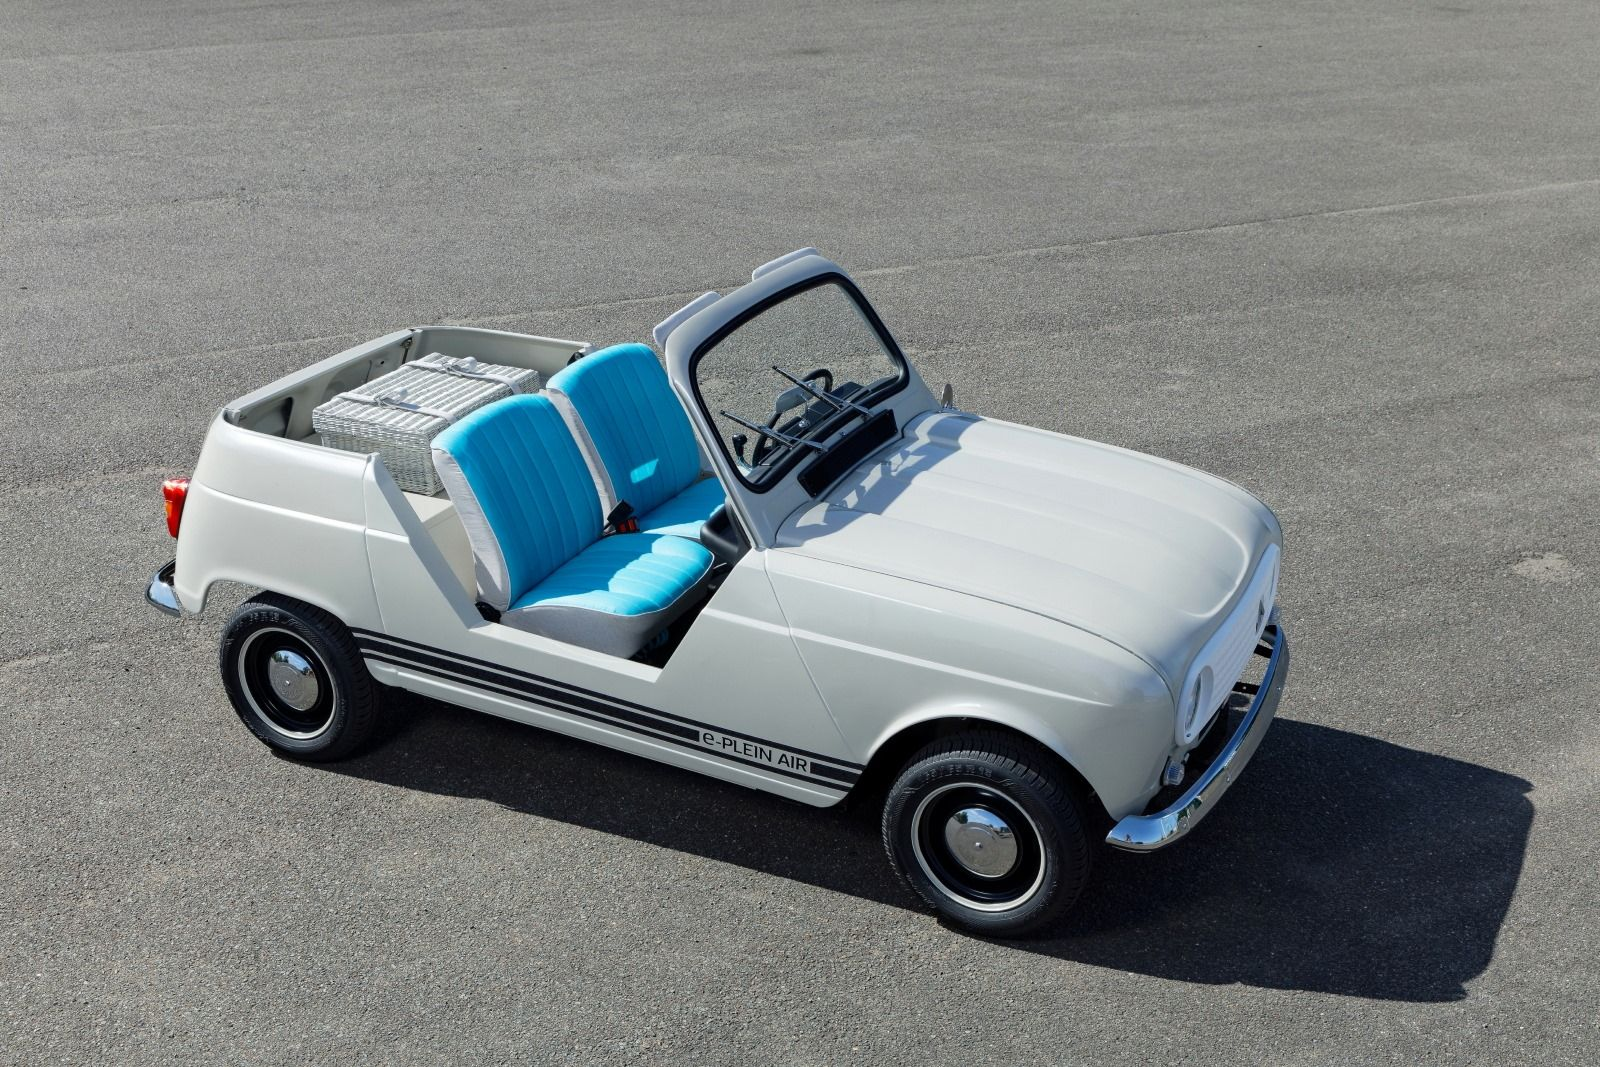 Renault E-Plein Air Gives New EV Life to a Classic Beach Runabout